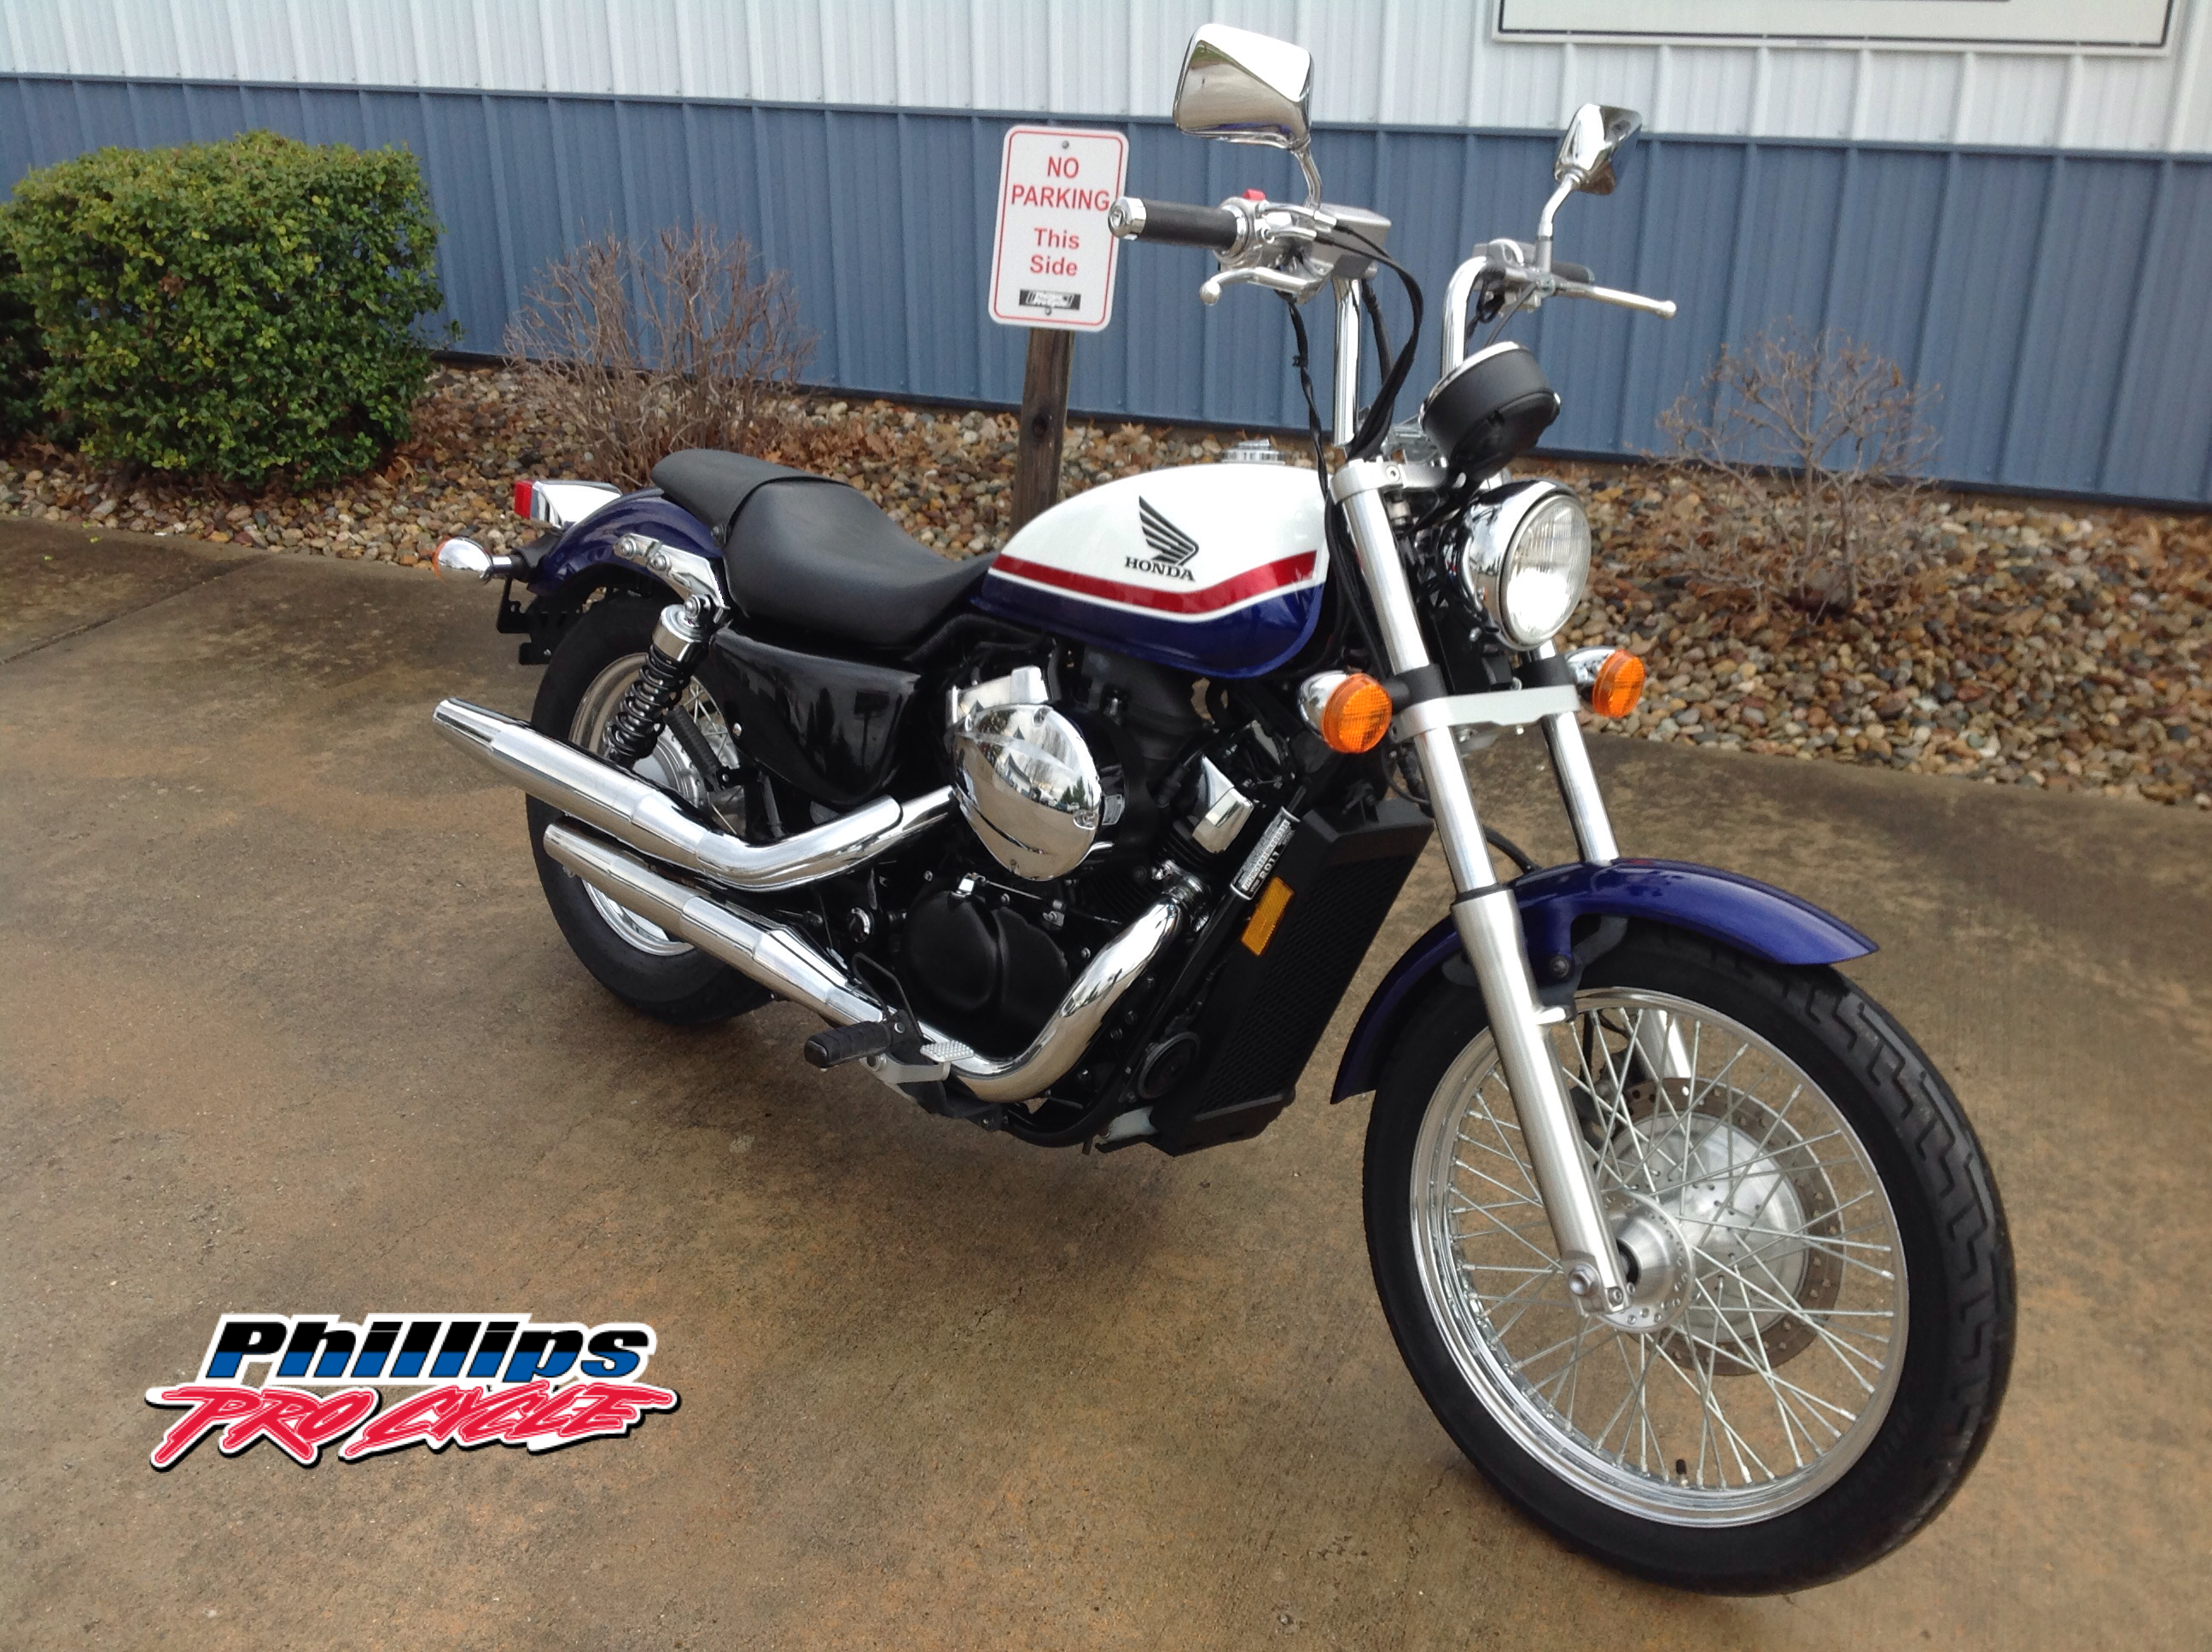 For Sale 2011 Honda Shadow 750rs In Southern Illinois 1992 Parts Img 1508 1507